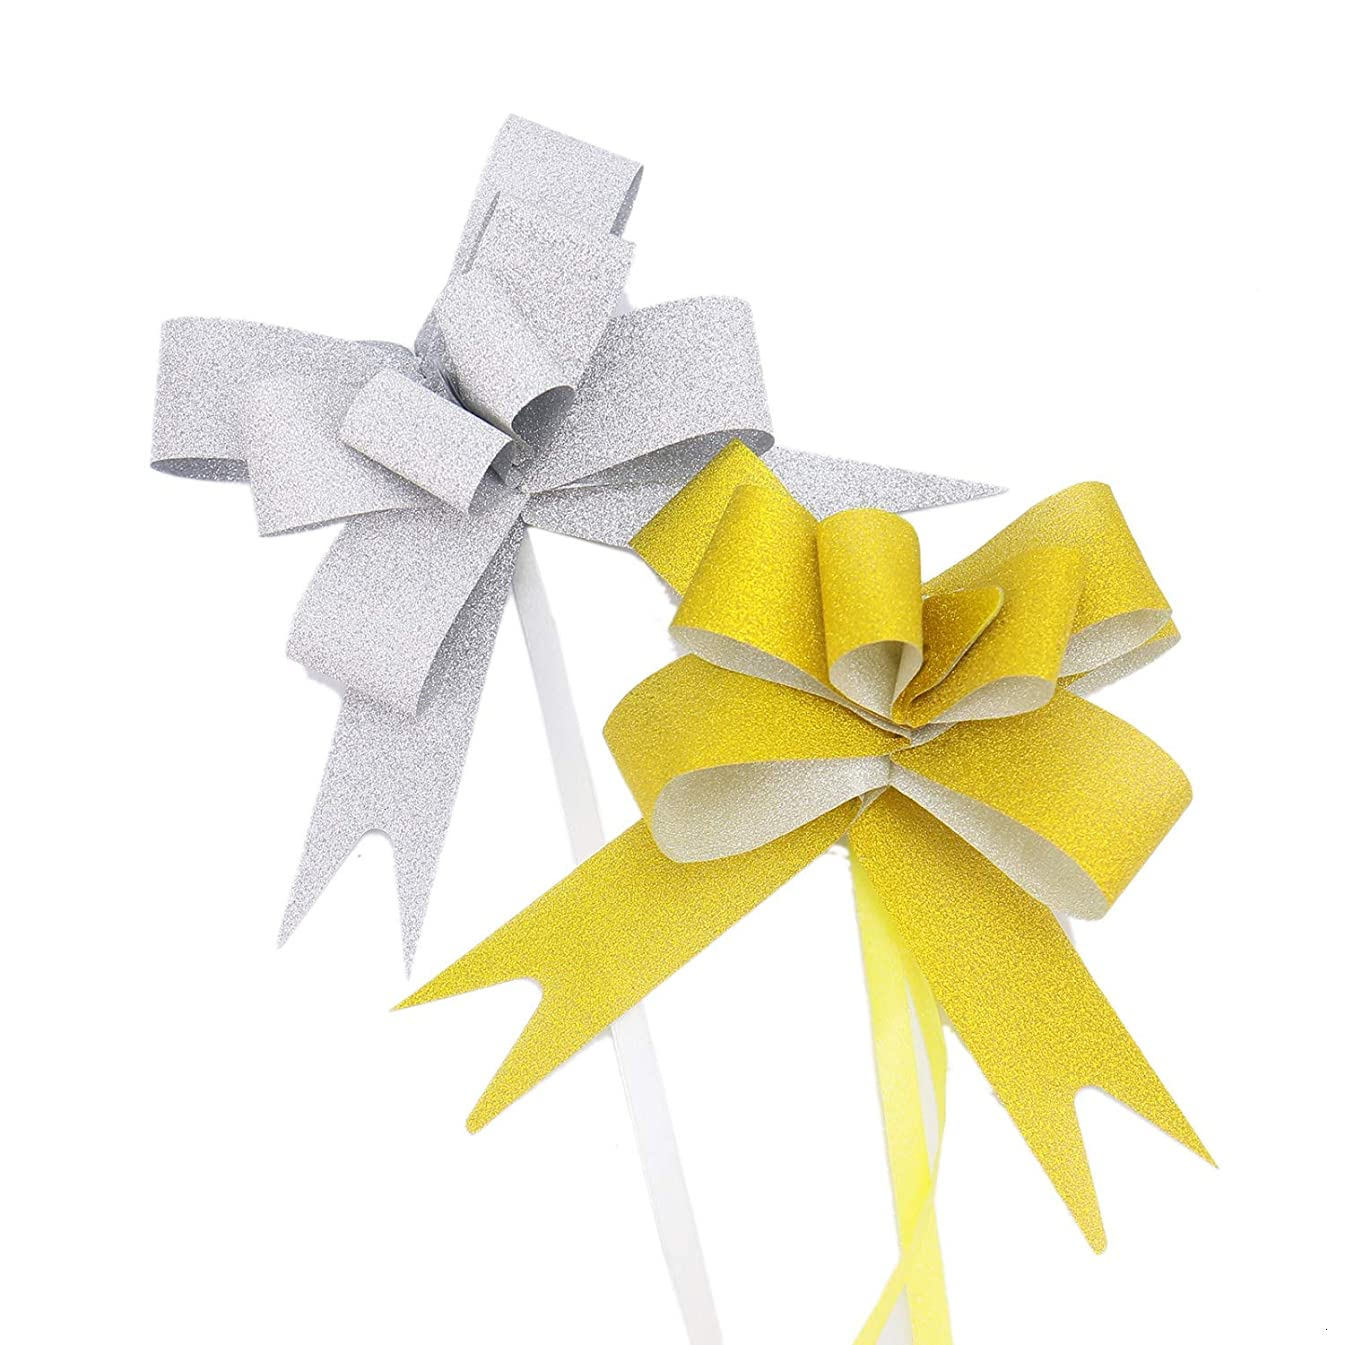 Monrocco 105pcs Glittering Pull Bows Gift Knot Ribbon Strings for Basket Gift Christmas Wedding Decoration, Glittering Colors